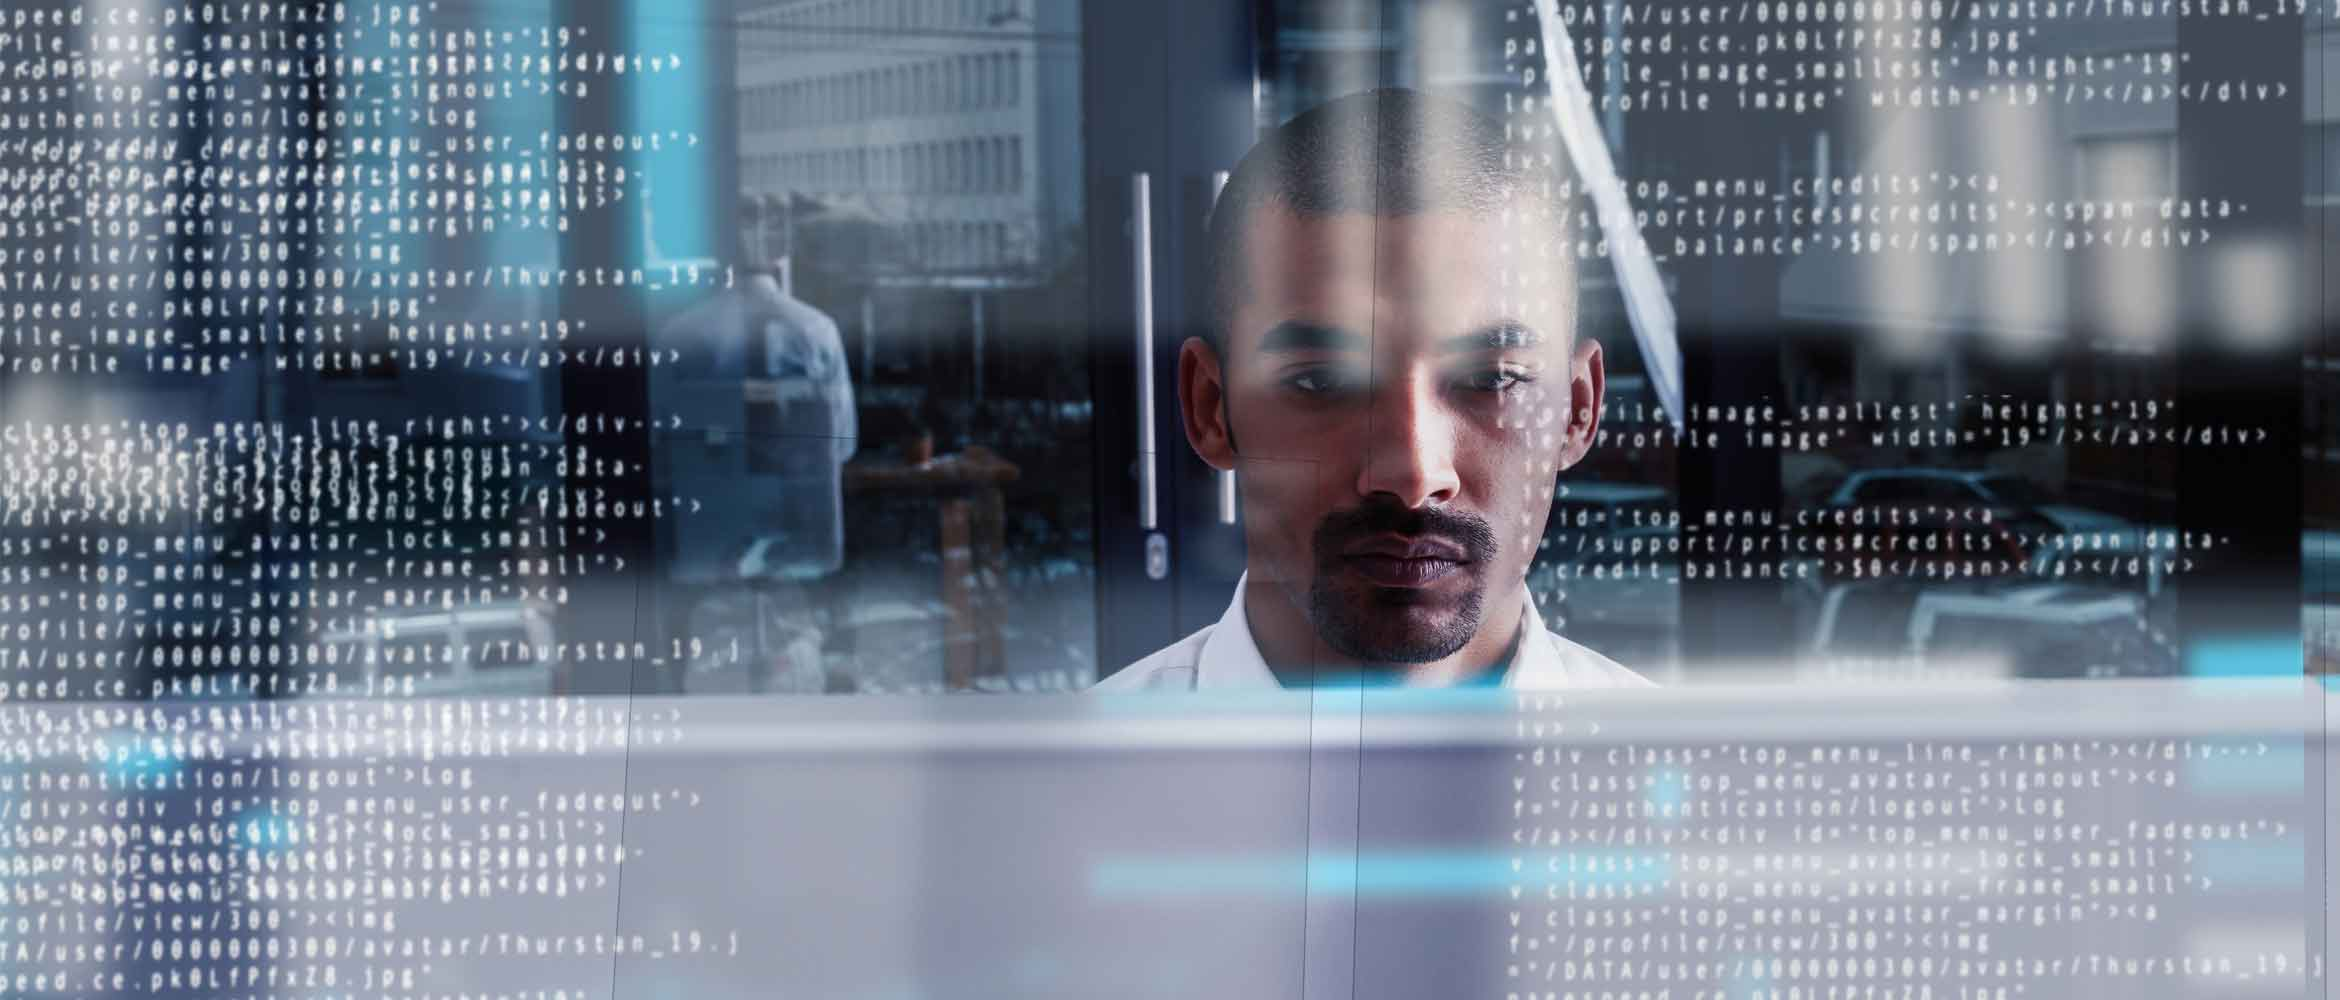 A man in a futuristic office scene is surrounded by numbers and code as he works from a computer screen